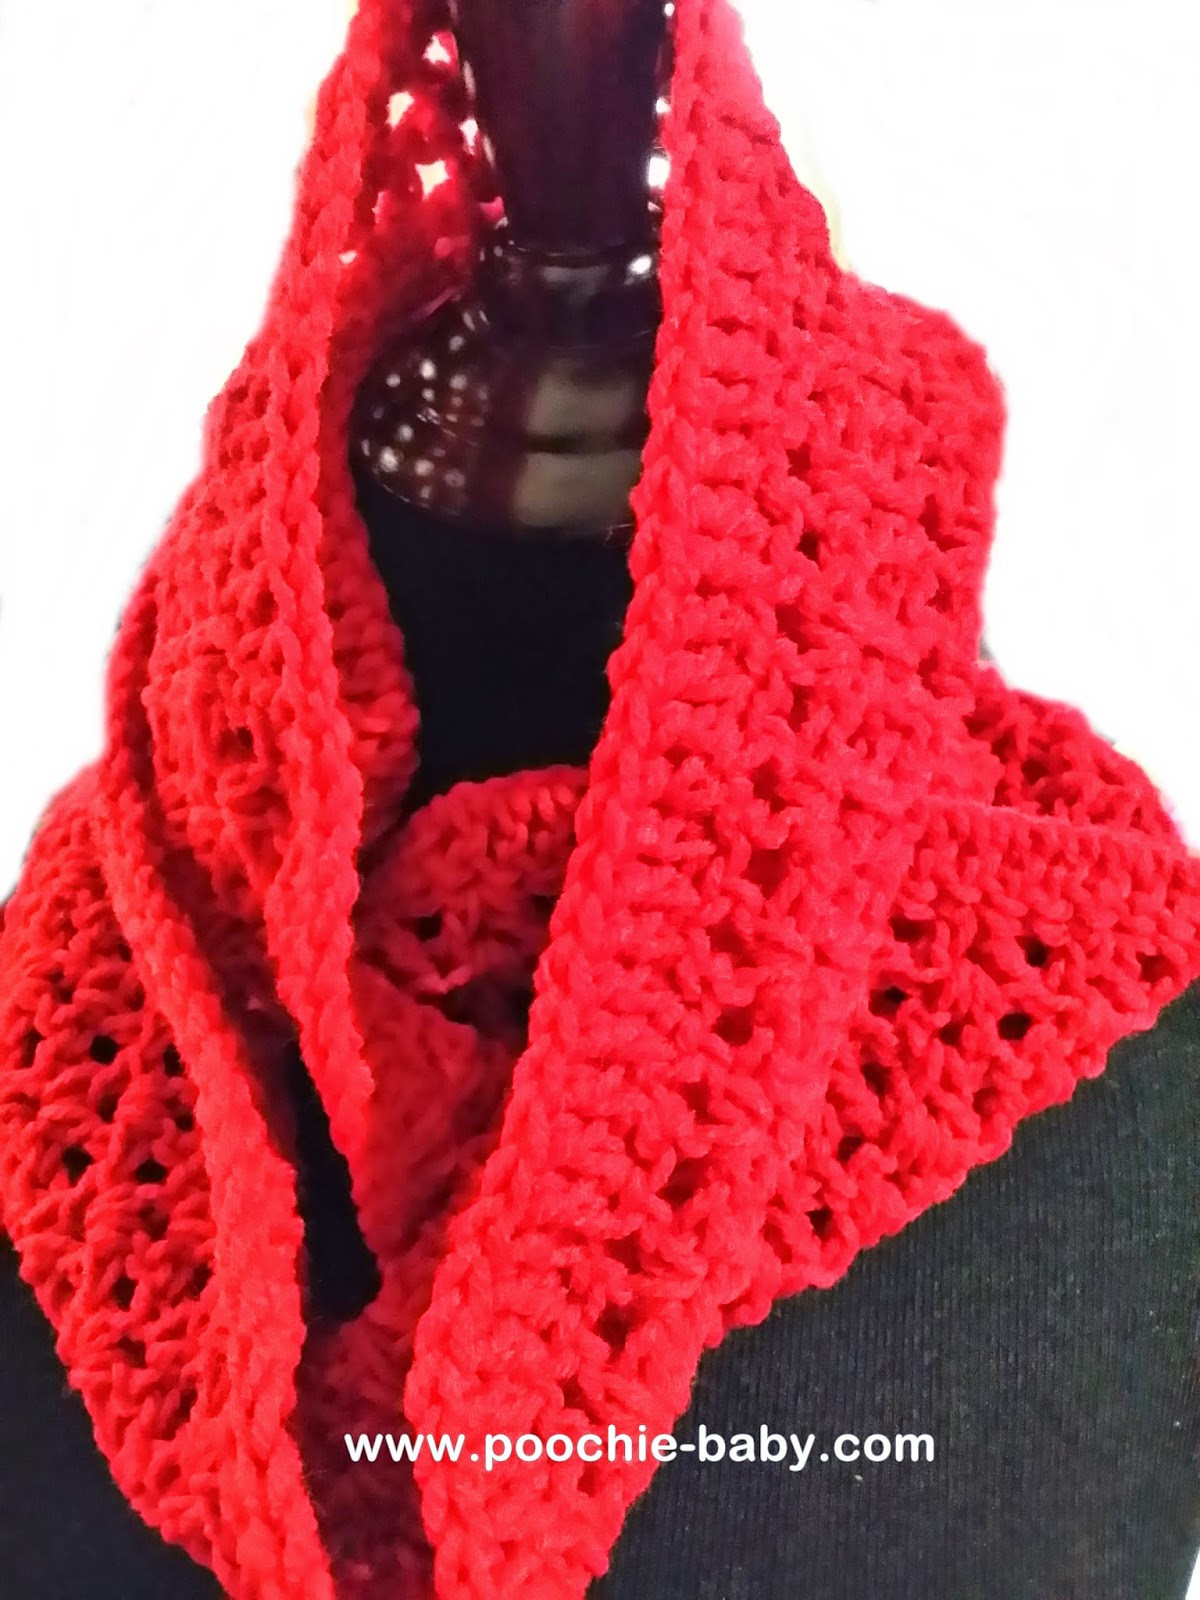 Inspirational Raising Mimi Poochiebaby Catalina Infinity Scarf Free Free Quick and Easy Crochet Scarf Patterns Of Wonderful 42 Photos Free Quick and Easy Crochet Scarf Patterns